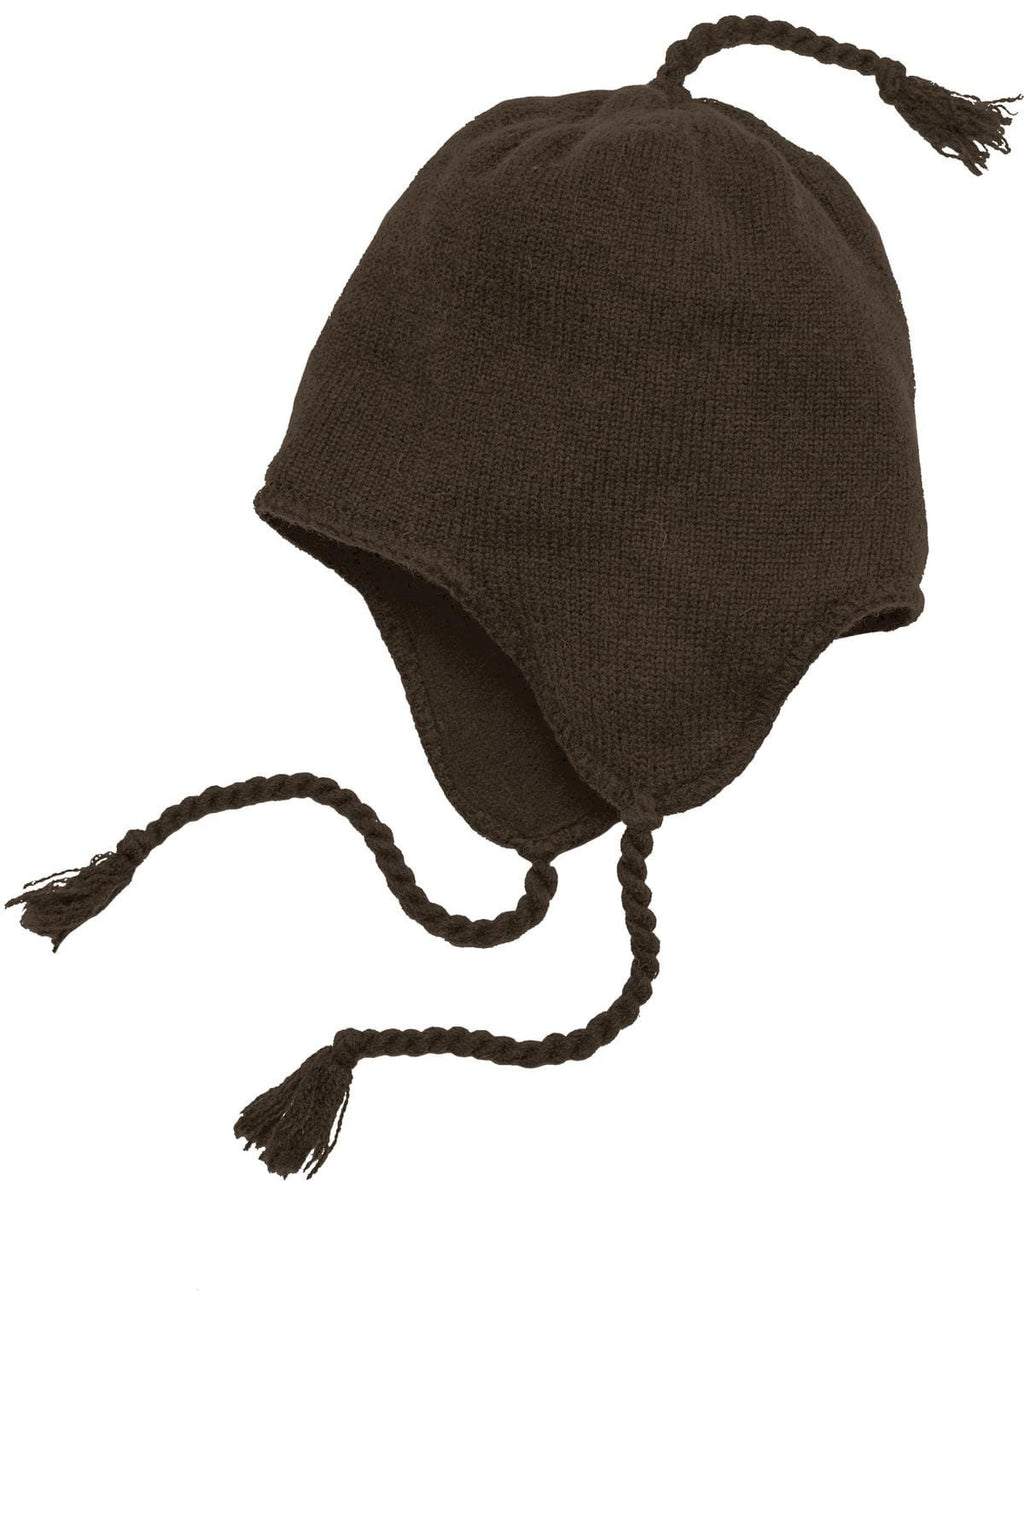 District Brand Knit Hat With Ear Flaps-2